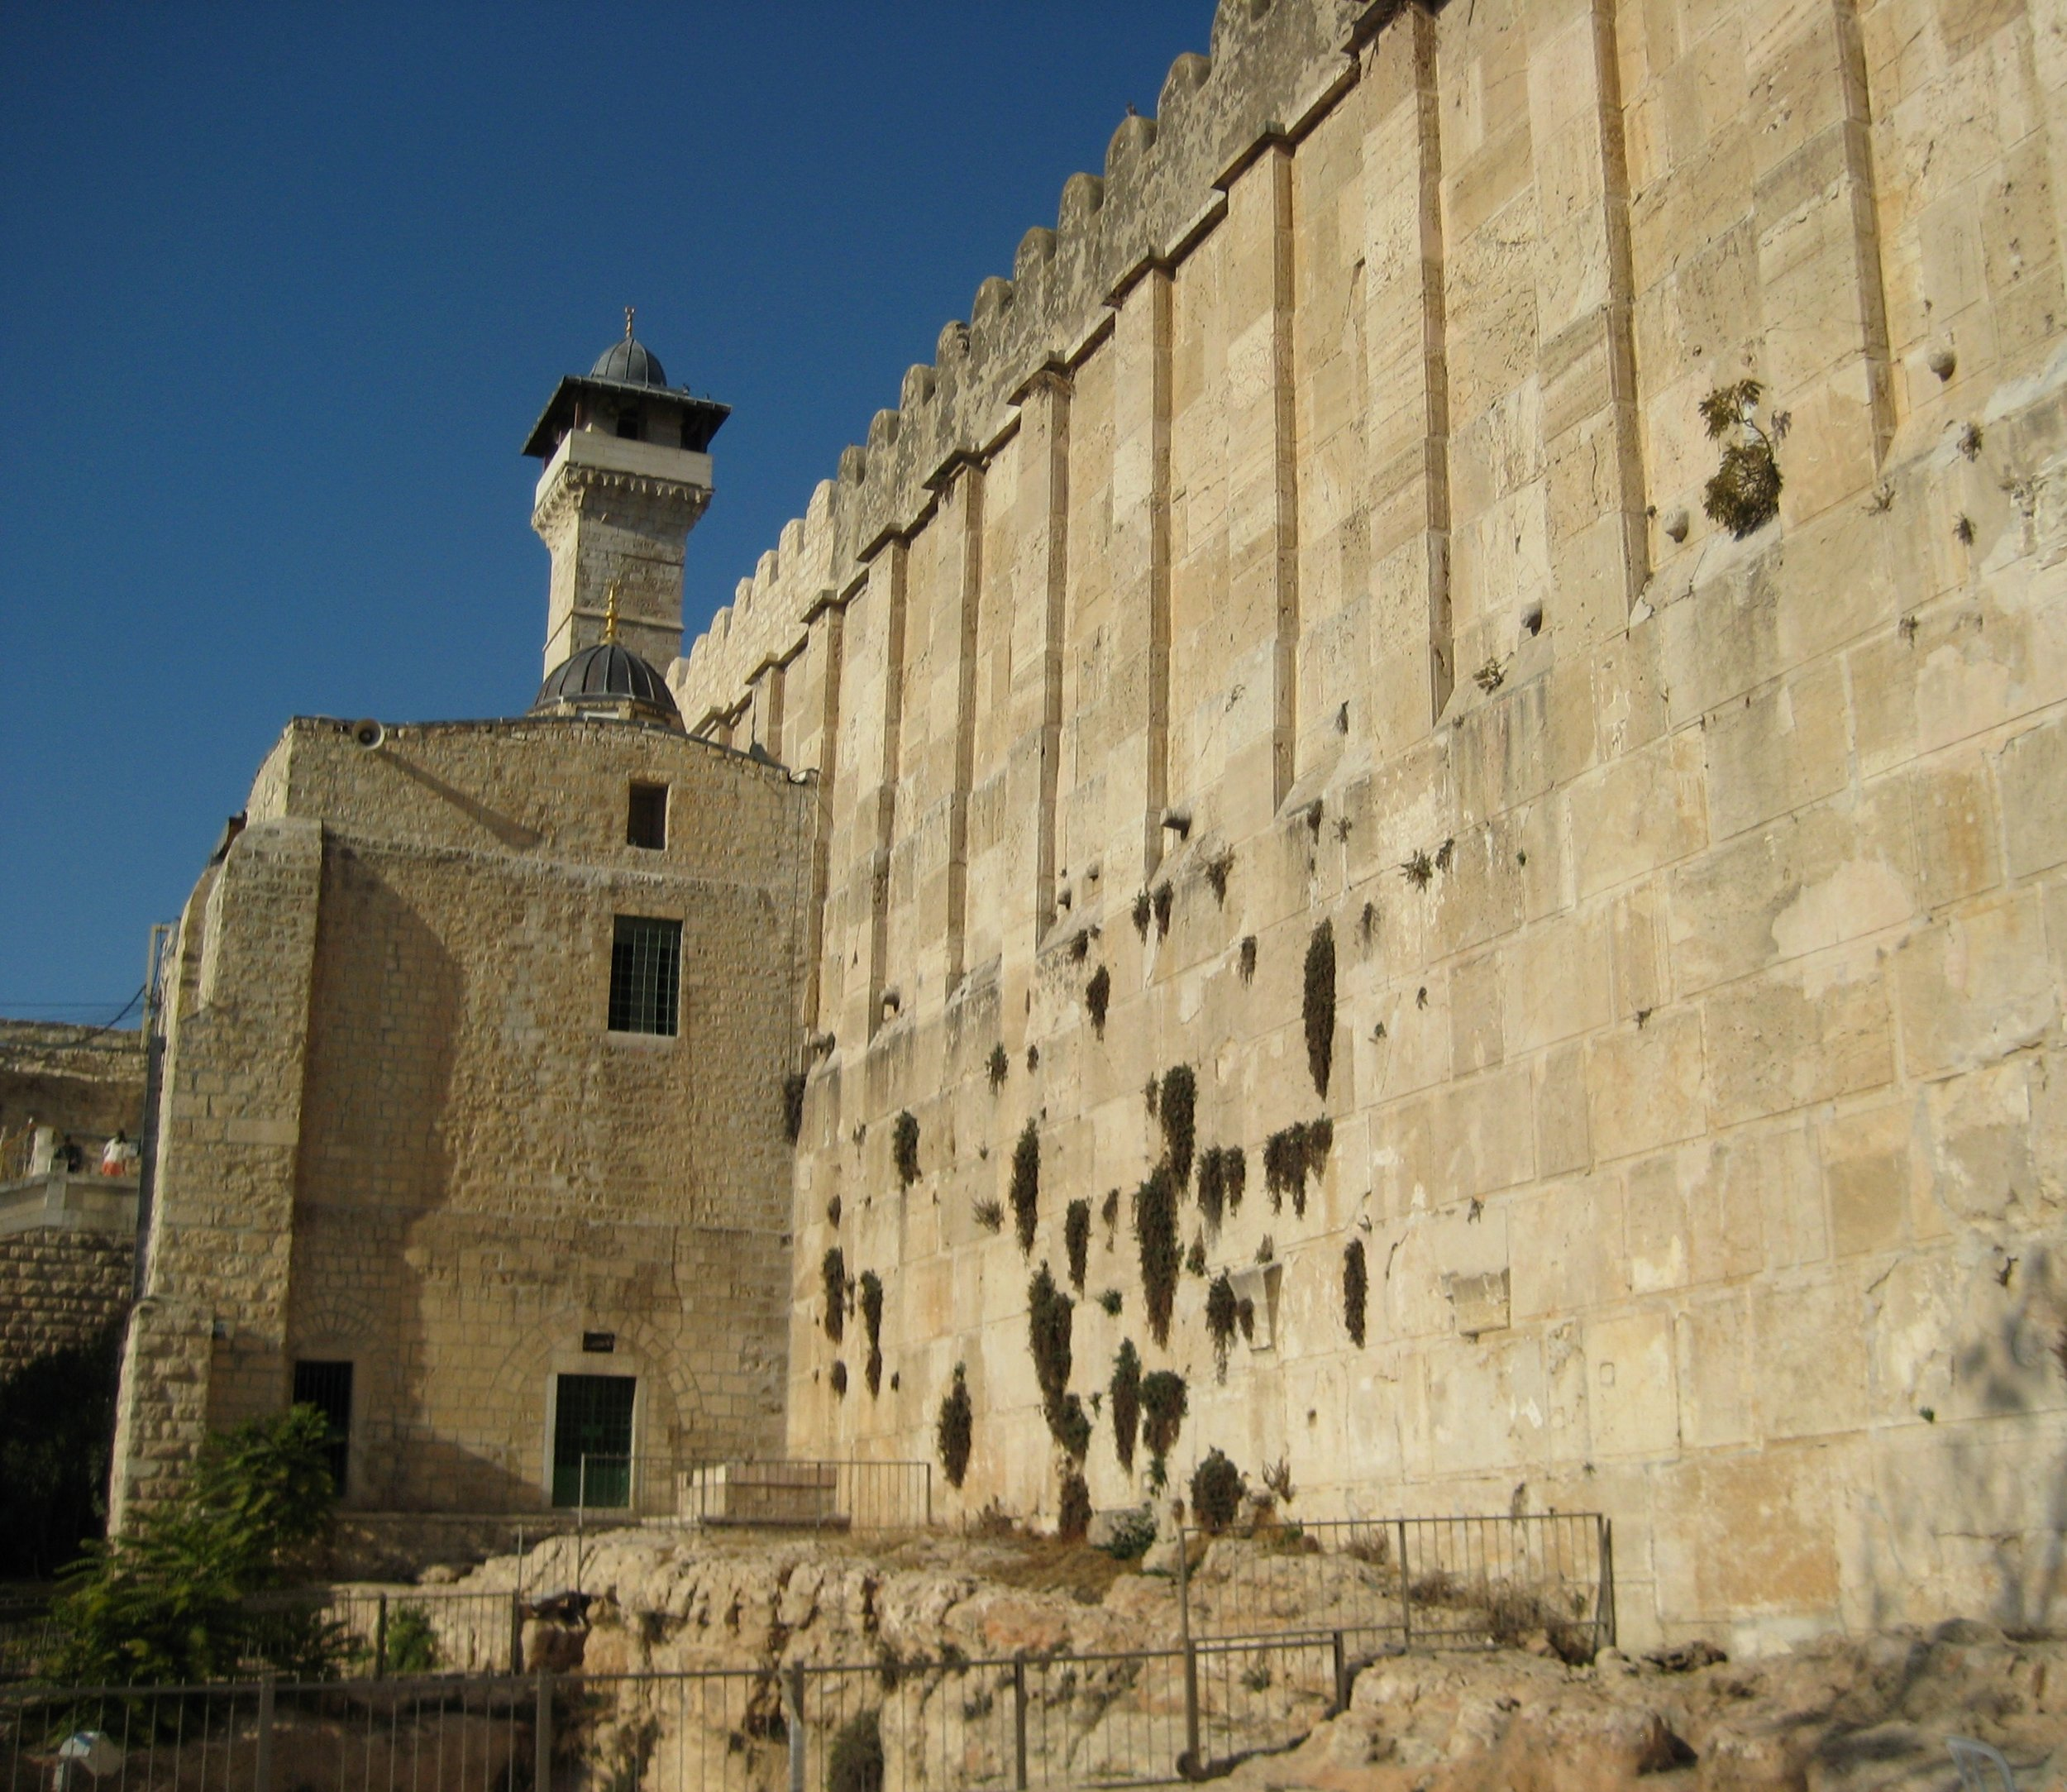 The tombs of the patriarchs, including Abraham revered by Jews, Muslims and Christians, in Hebron. Photo by Gil Zohar.